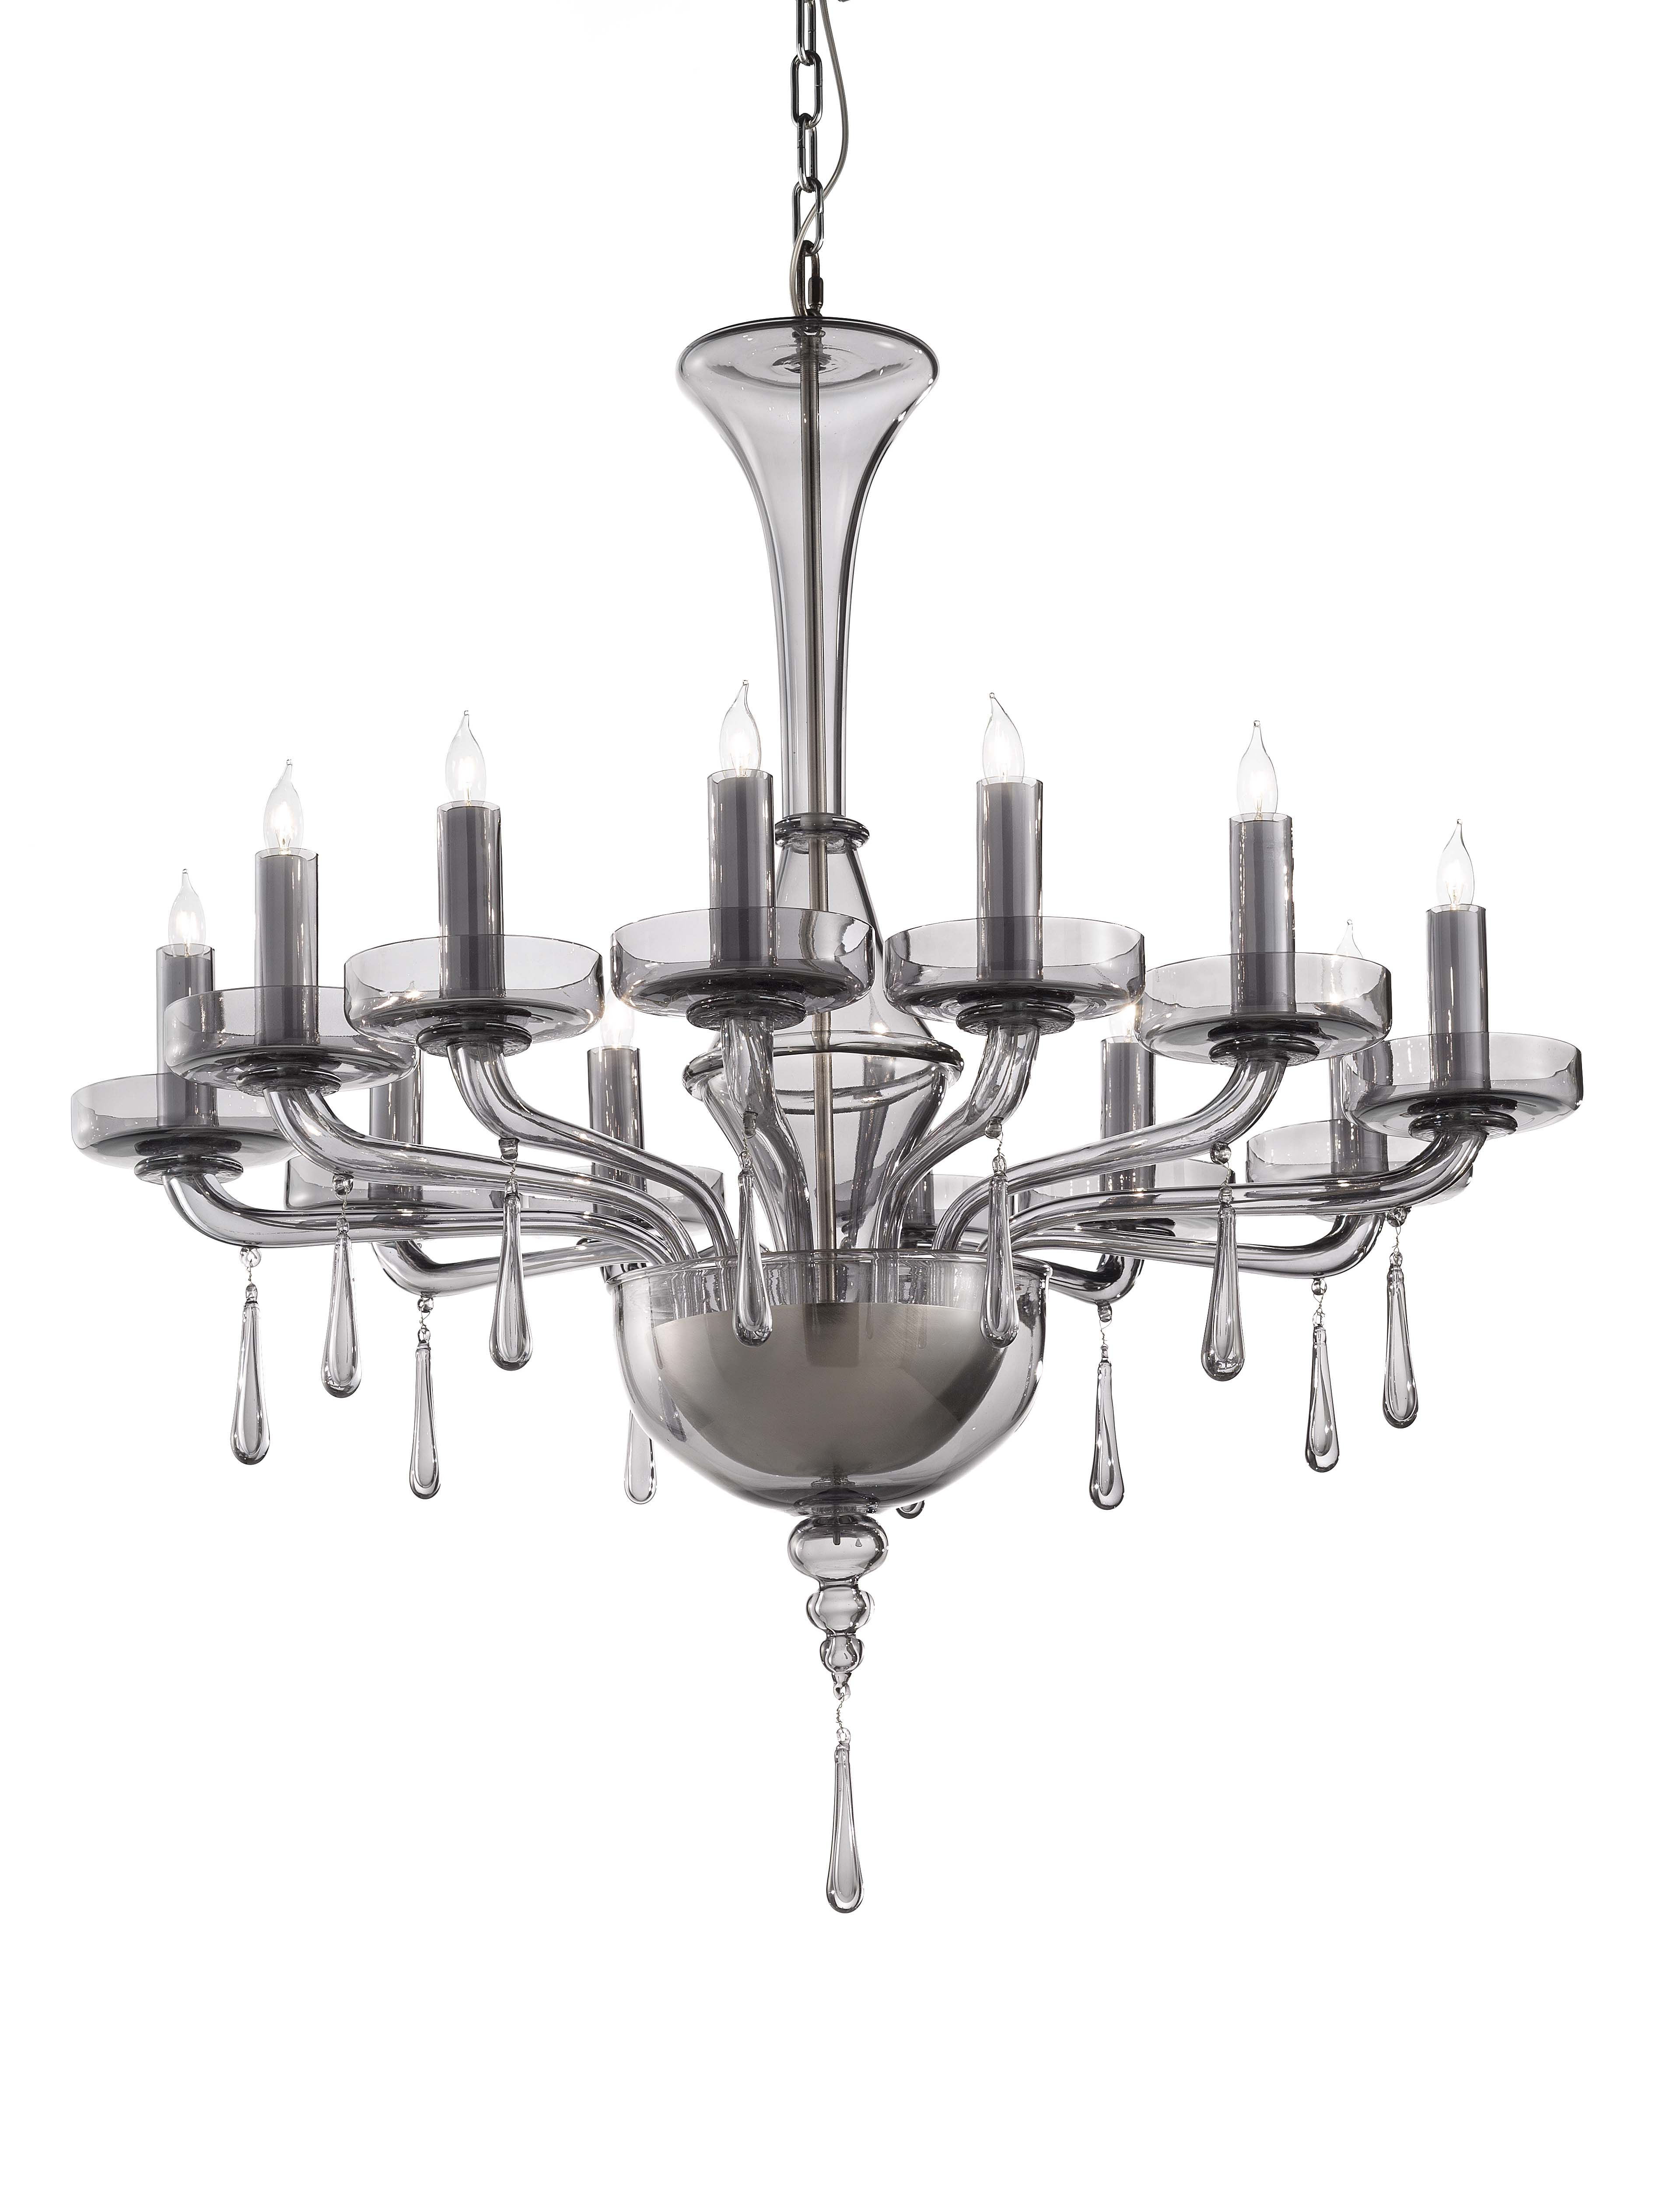 Oroveso 12 light chandelier smoke by otium murano glass otium oroveso 12 light chandelier smoke by otium murano glass aloadofball Image collections